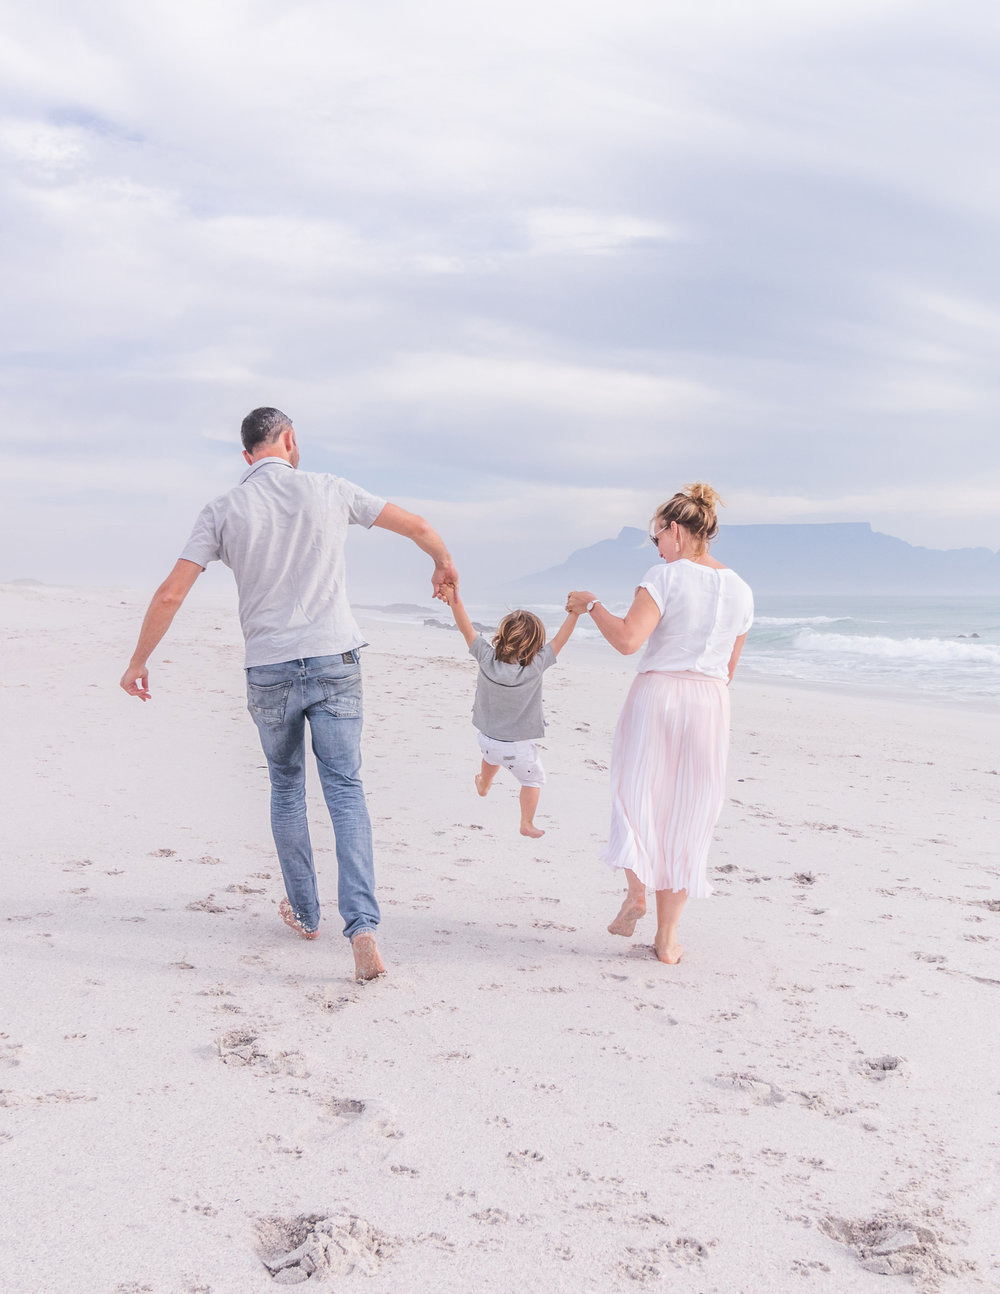 Ken Treloar Photography - Monteban Family Photos - Cape Town 2018 (high-res)-9.jpg